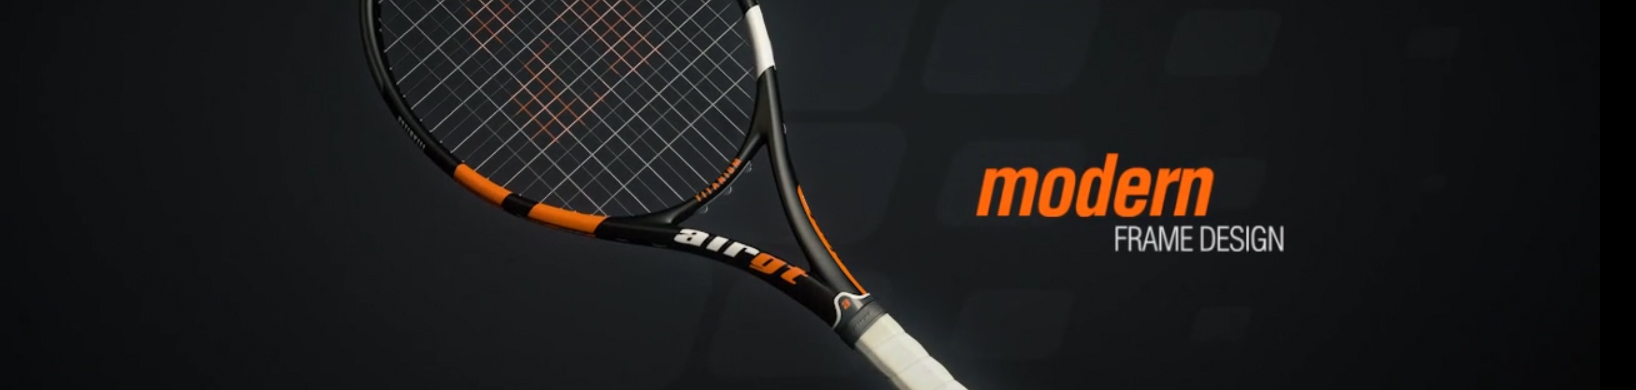 AIR GT TENNIS RACQUET